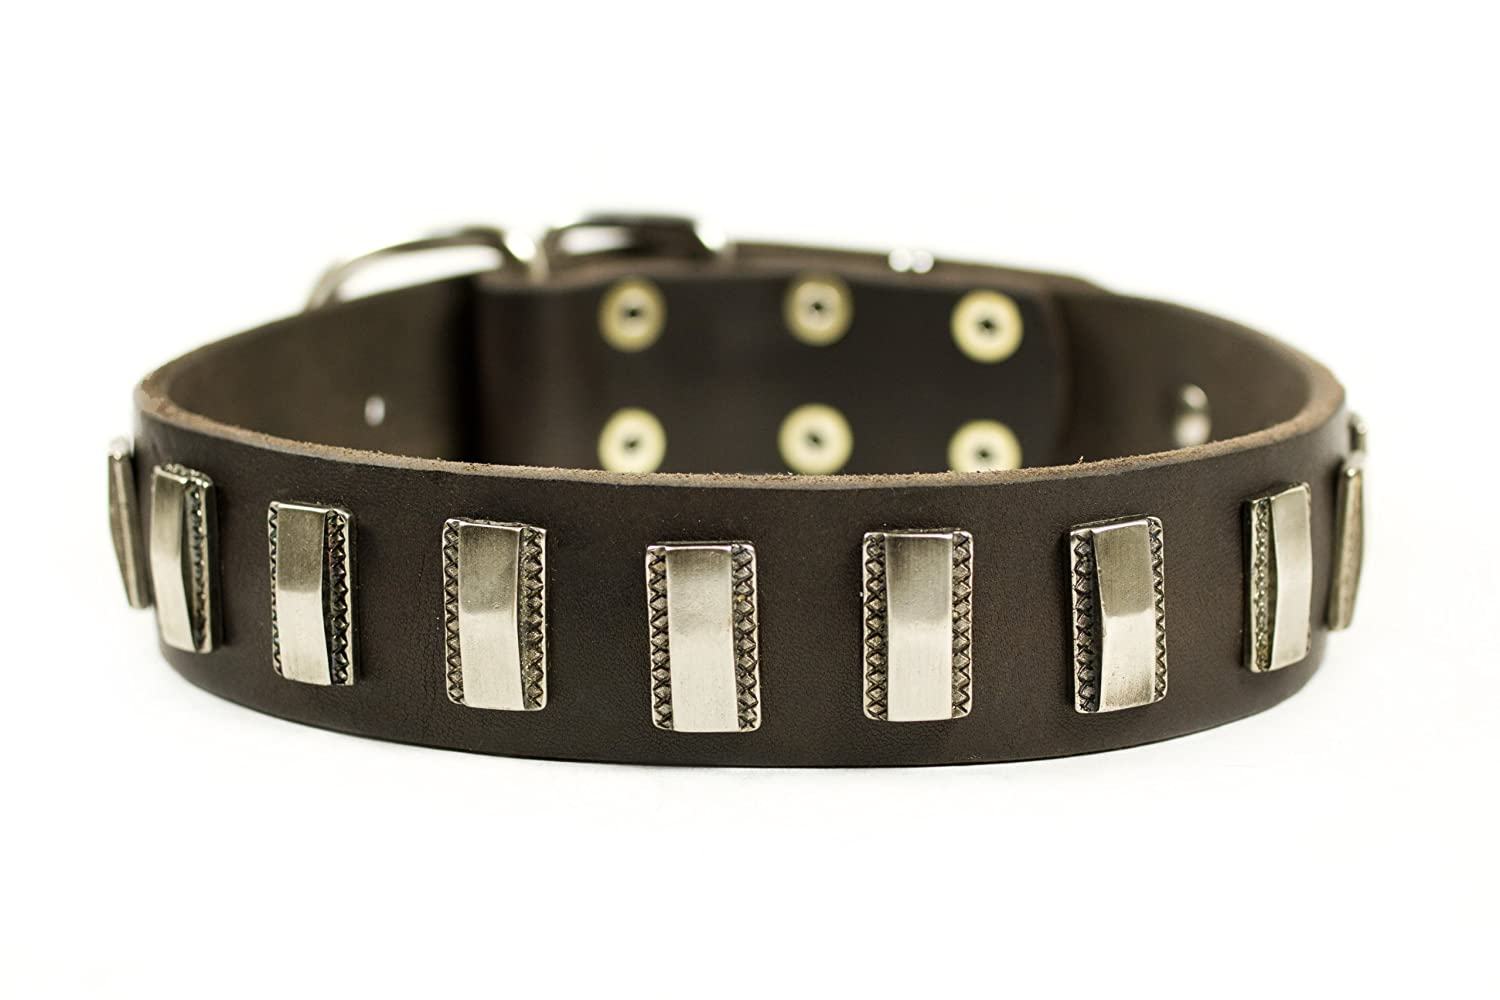 Dean and Tyler SILVER FIRE, Leather Dog Collar with Strong Nickel Plates, Brown, Size 26-Inch by 1-1 2-Inch, Fits Neck 24-Inch to 28-Inch